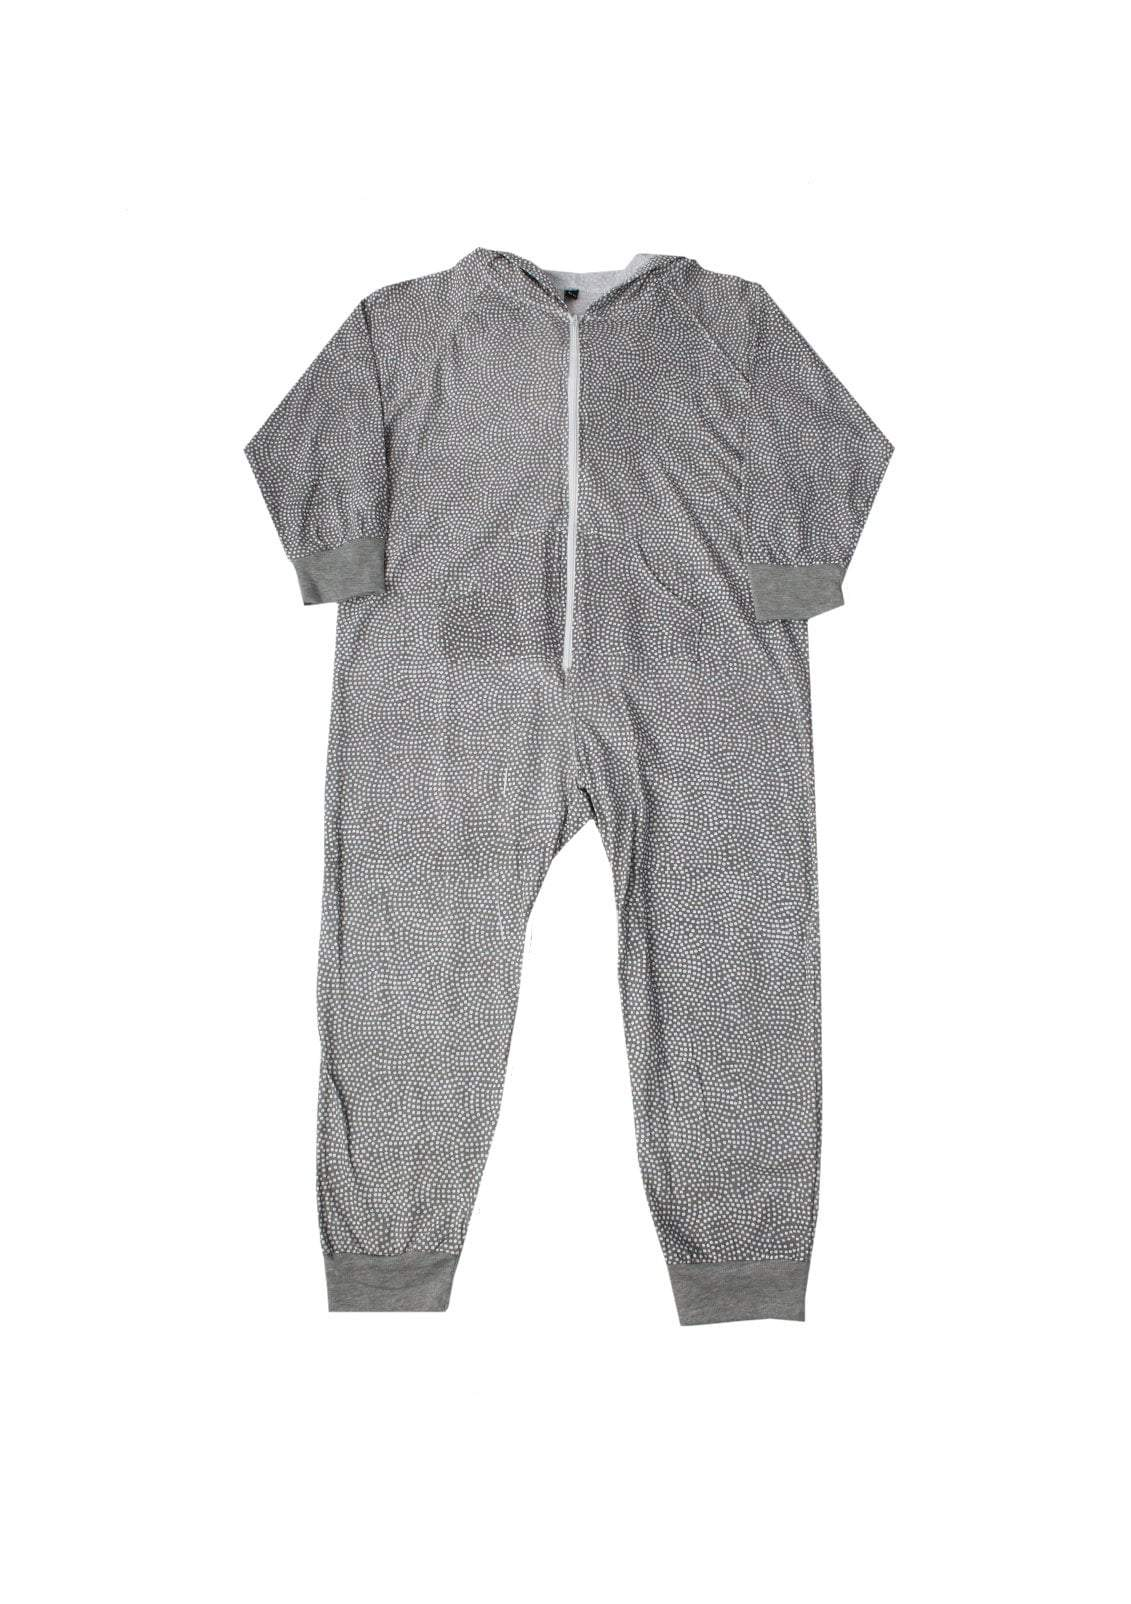 Cuddle Up Kid Onsie